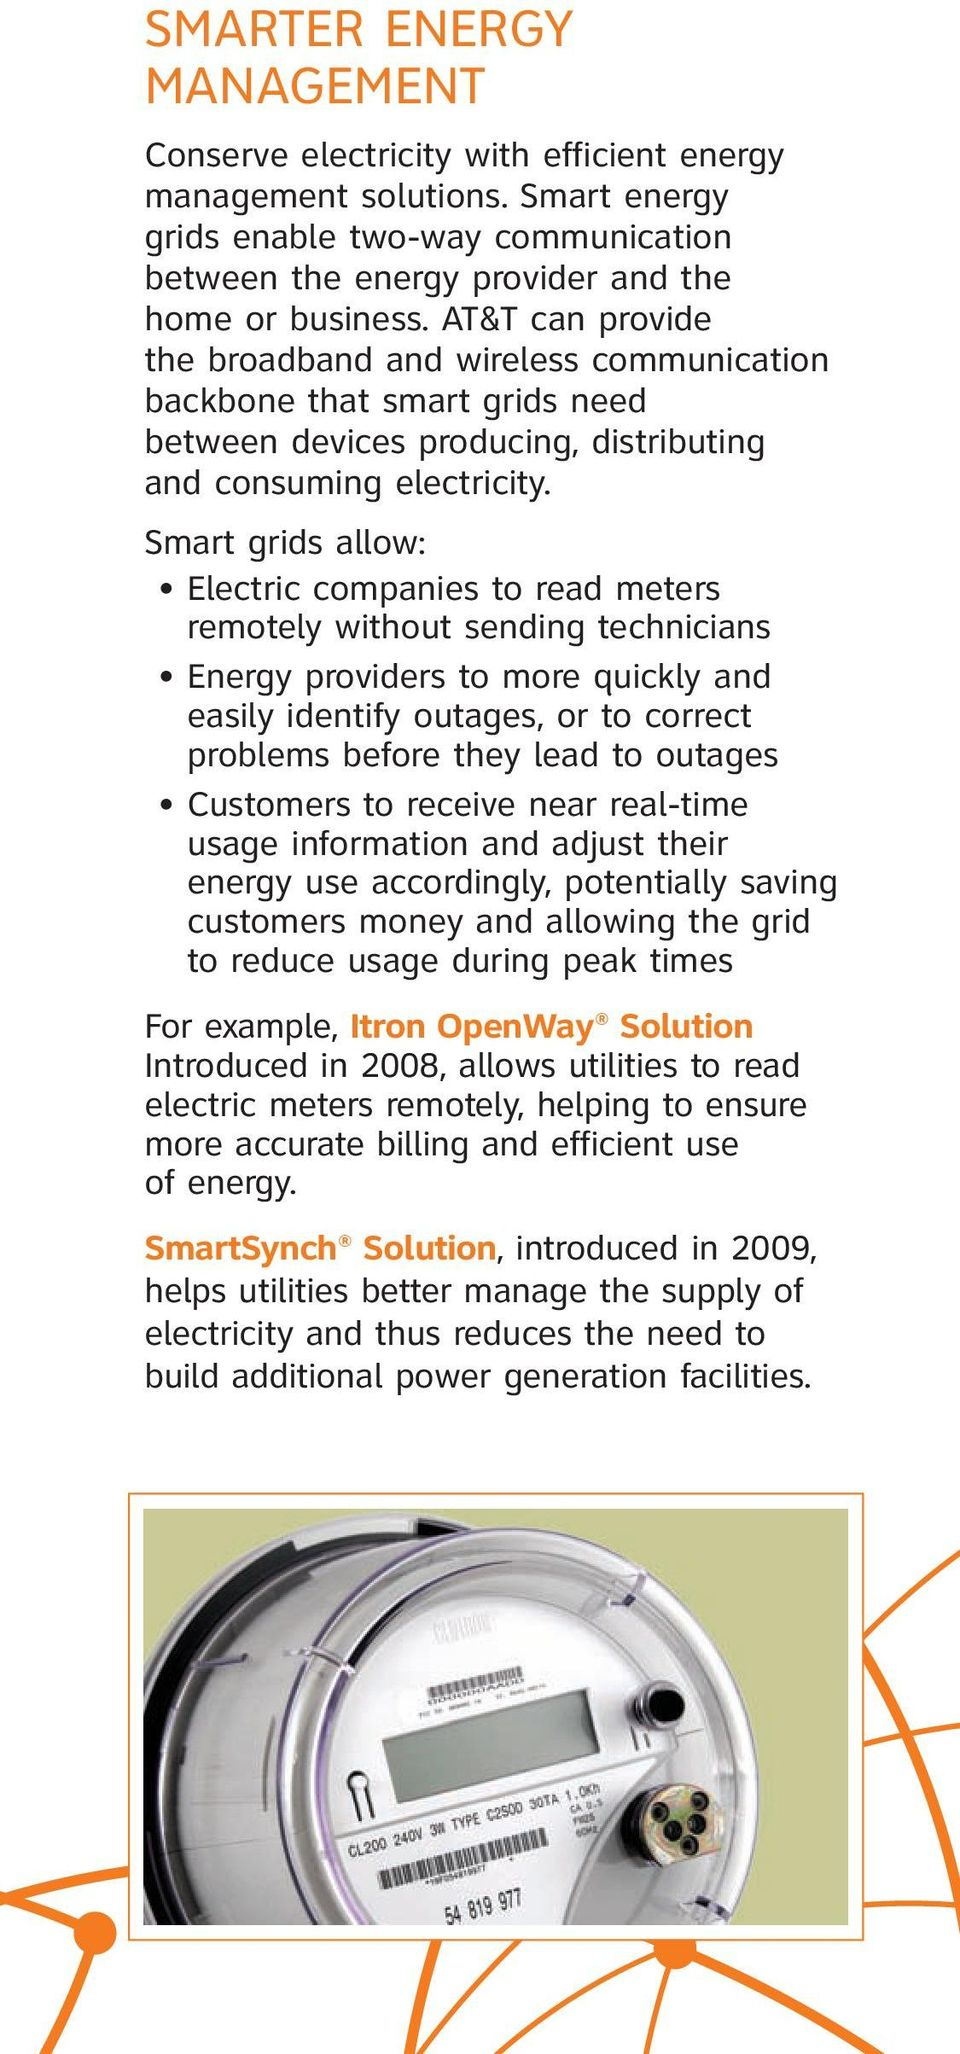 Smart grids allow: Electric companies to read meters remotely without sending technicians Energy providers to more quickly and easily identify outages, or to correct problems before they lead to